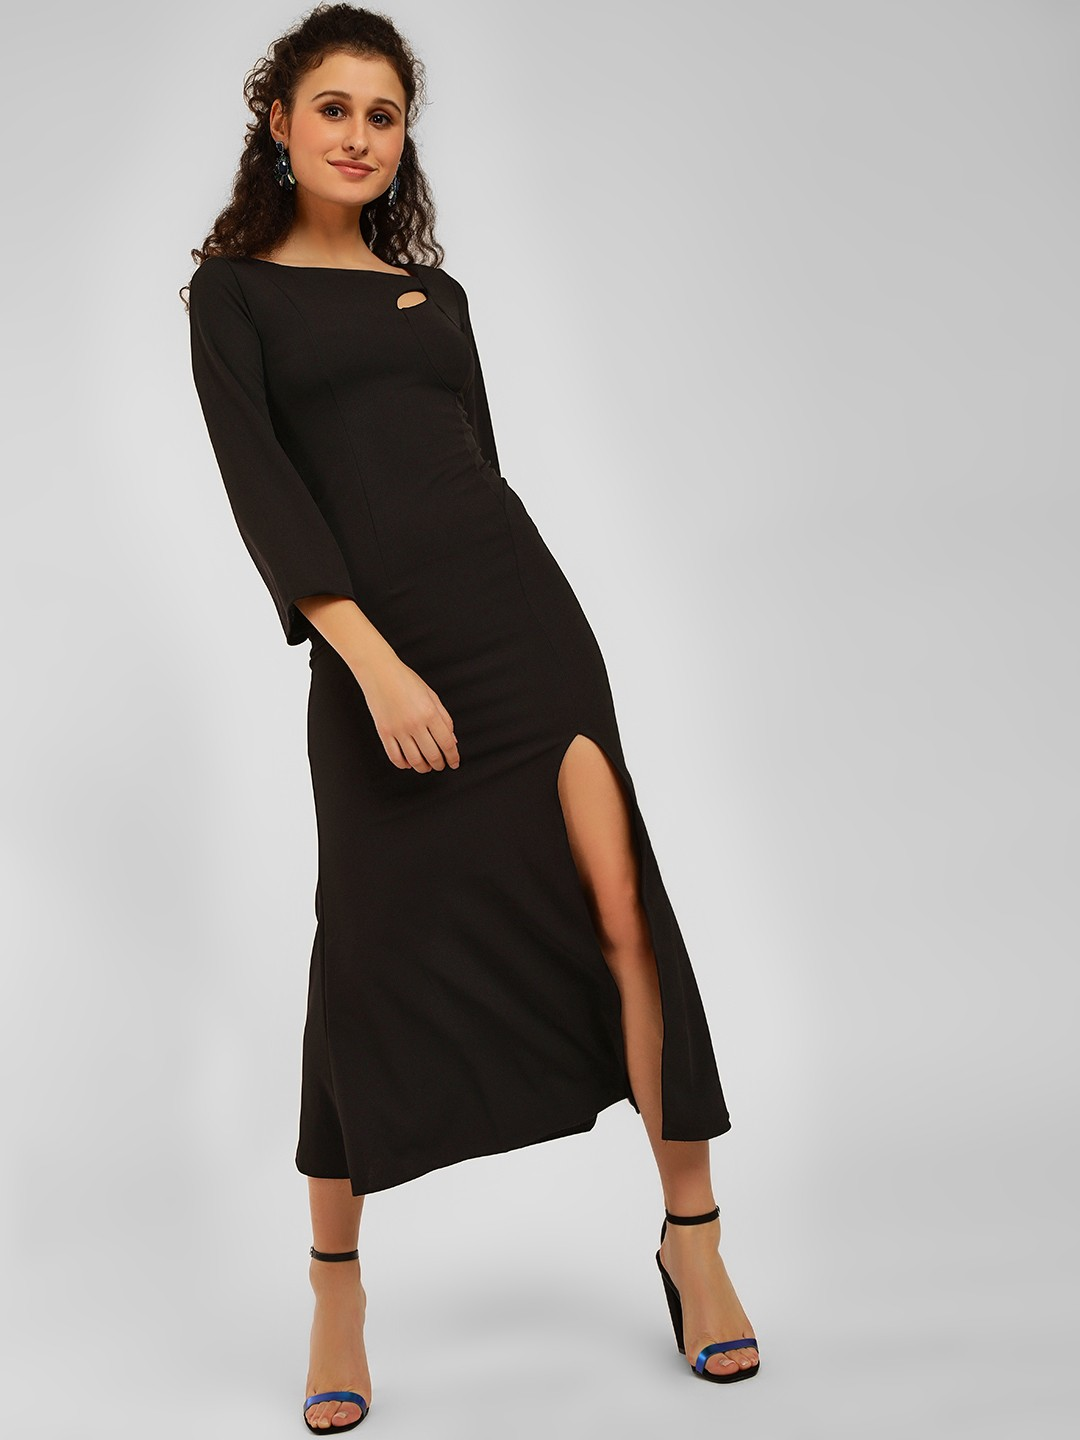 Origami Lily Black High Slit Maxi Dress 1